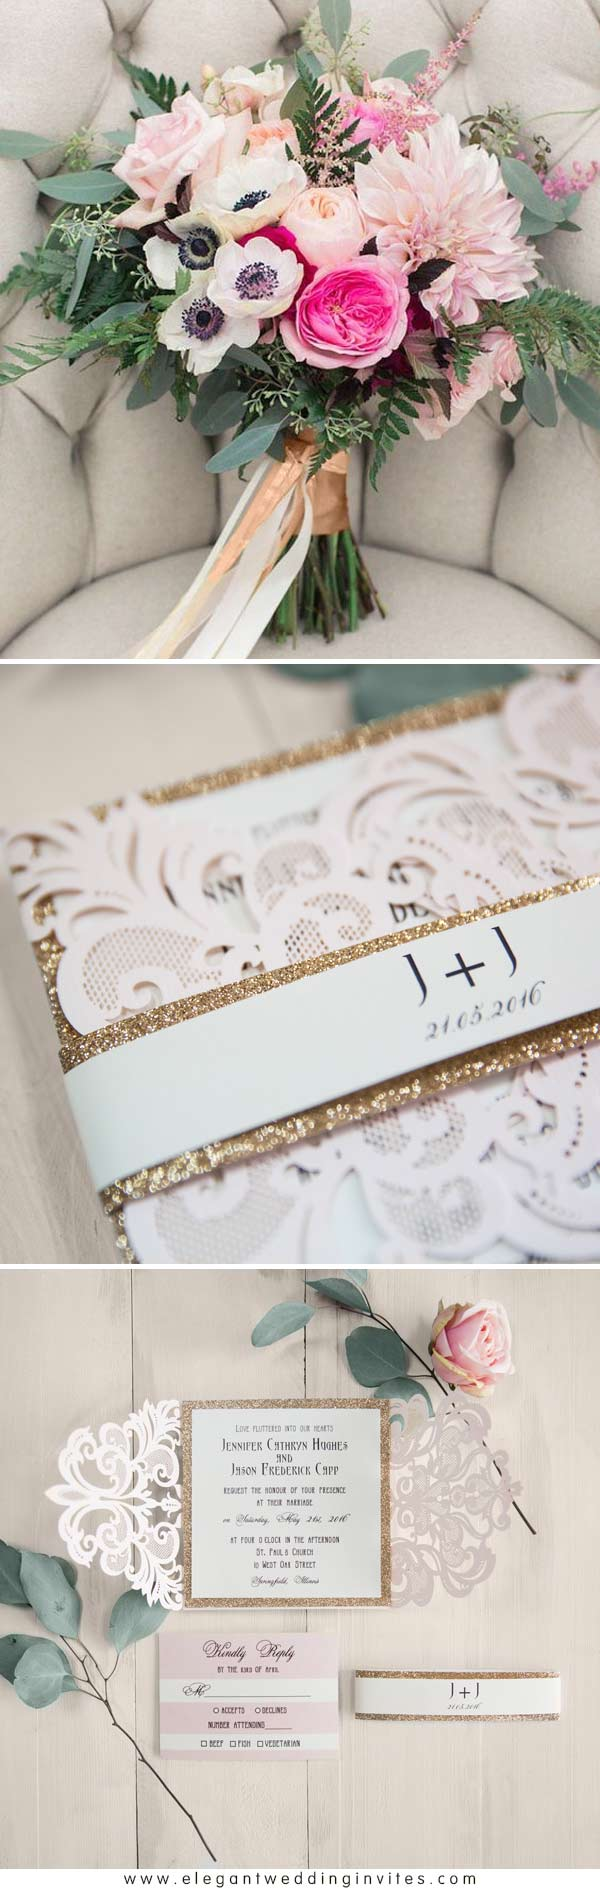 Elegant Blush Pink Laser Cut Wedding Invitation with Rose Gold Glittery Belly Band EWWS146